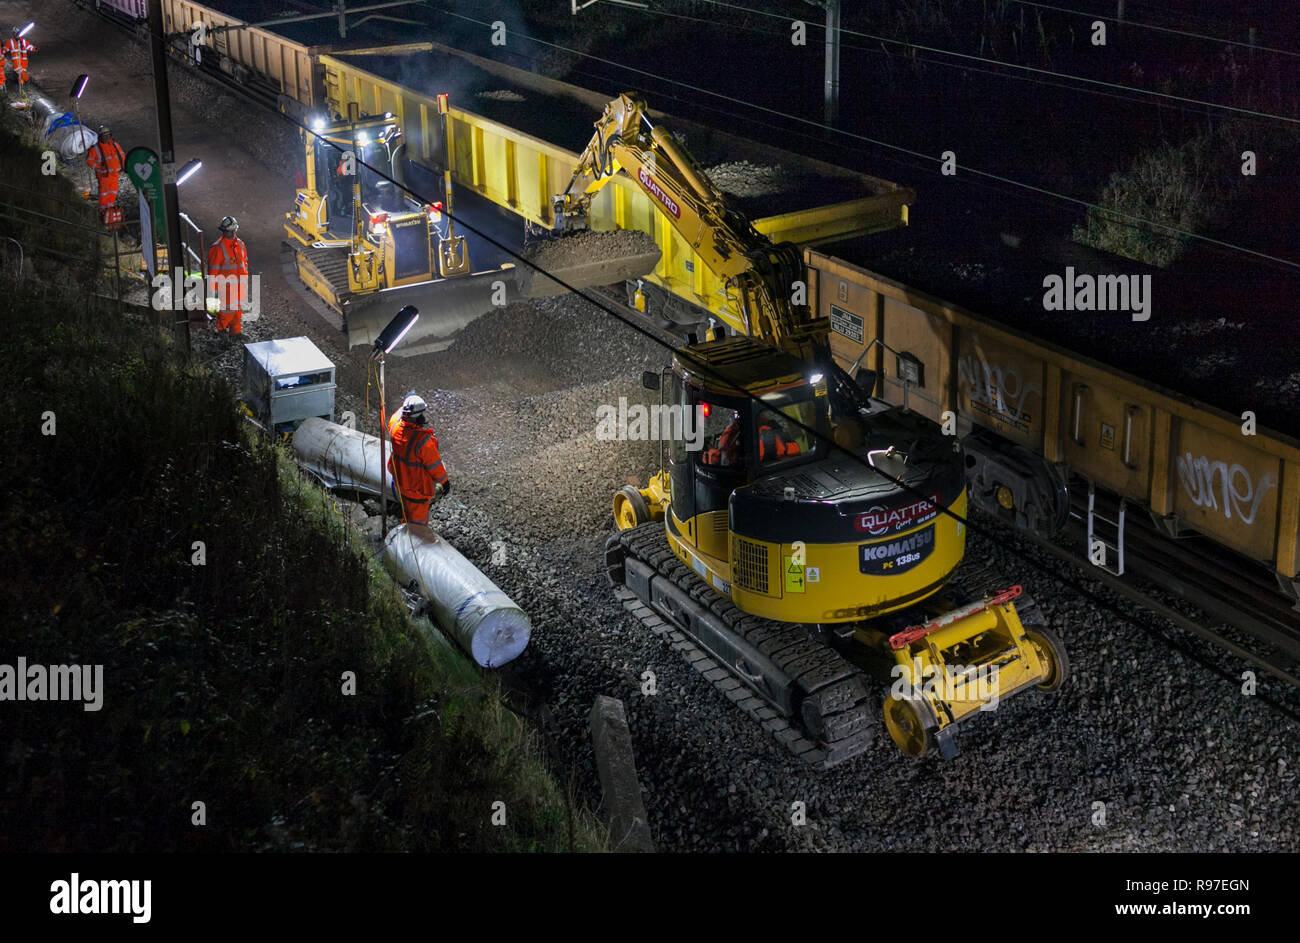 Network Rail track renewal under way during a night time possession on the West coast main line at Brock (north of Preston) contractor; Amey - Stock Image